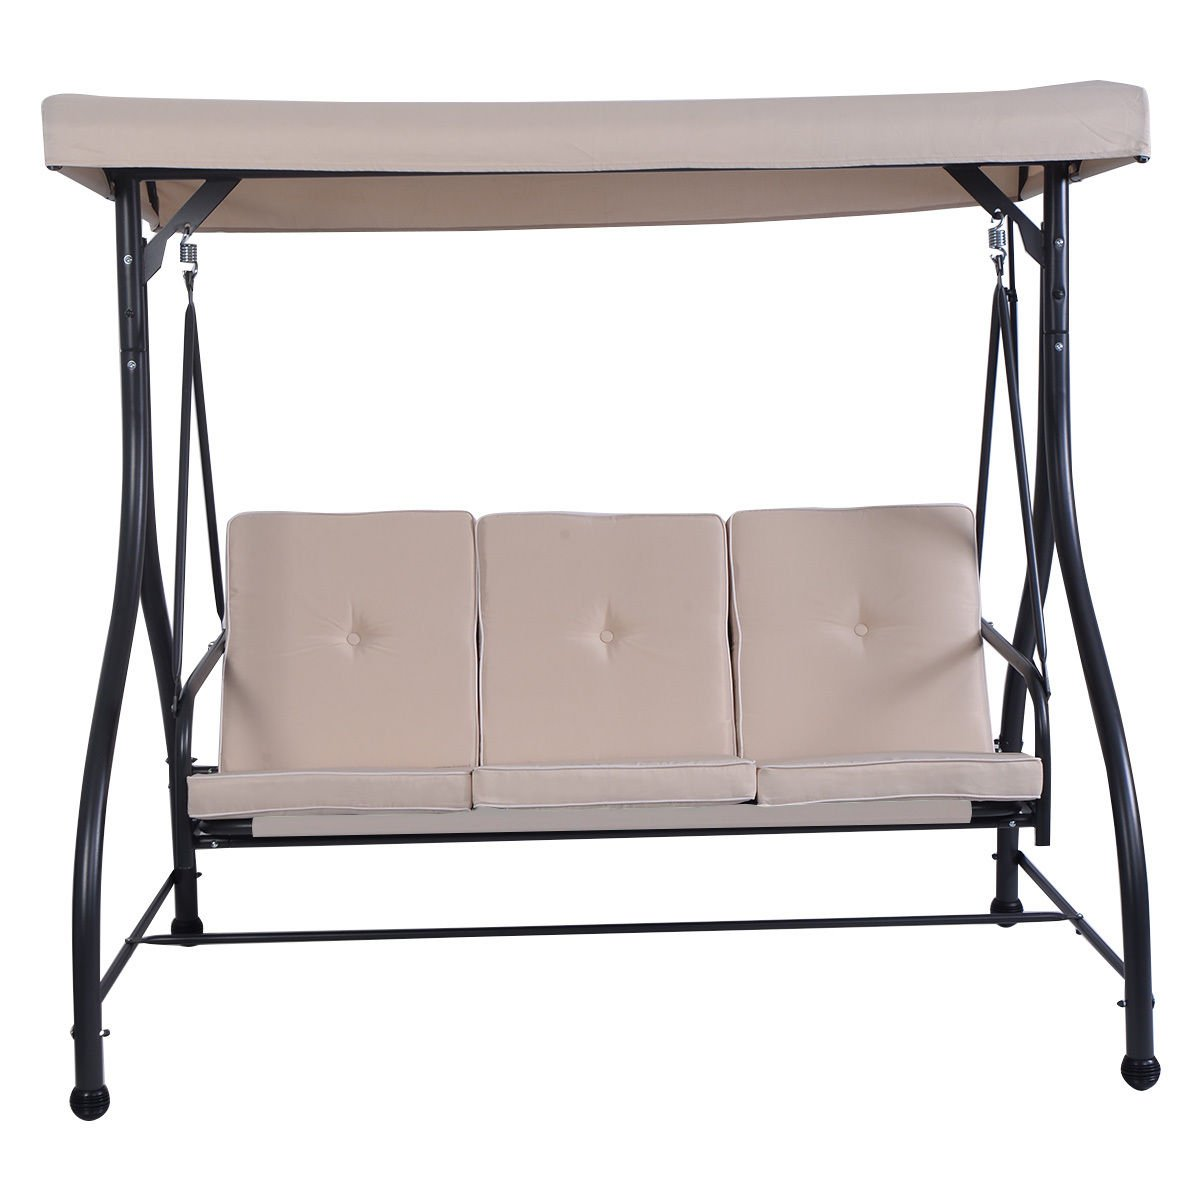 Globe House Products GHP 750-Lbs Capacity Black Frame & Beige Fabric Steel 3-Seat Swing Bench with Cushions